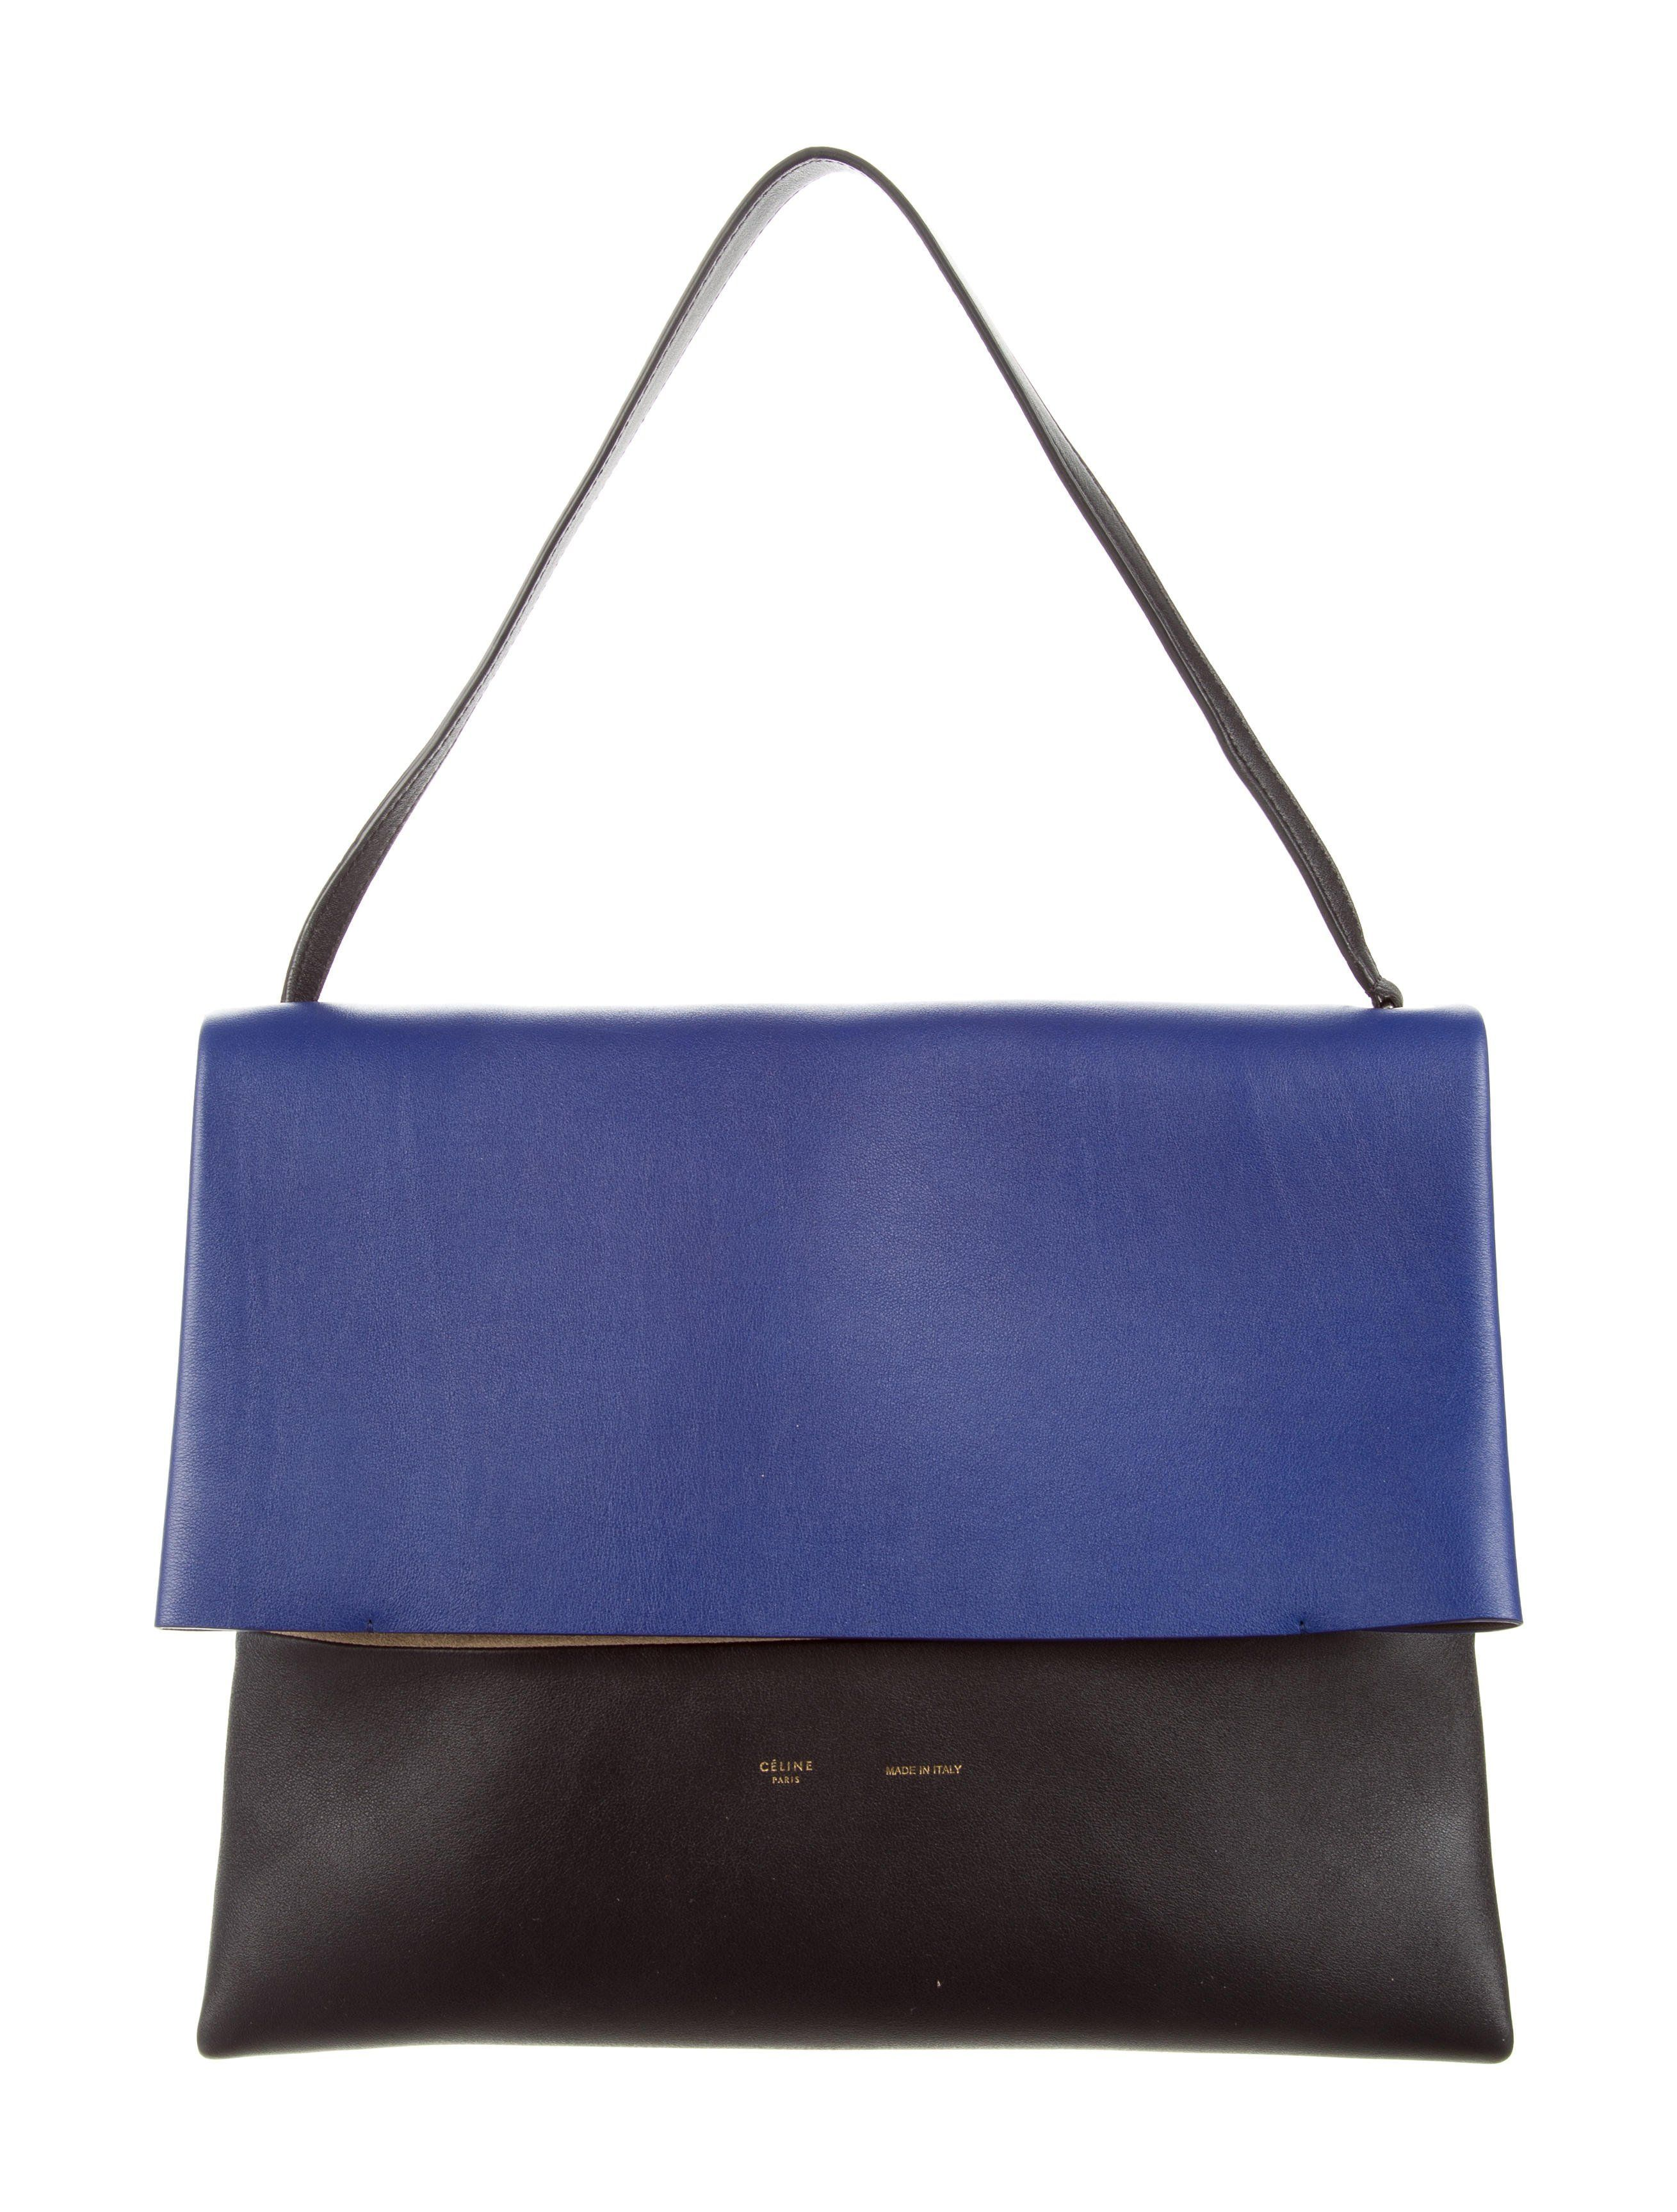 From the 2013 Collection by Phoebe Philo. Cobalt and black Céline All Soft  tote with 6cc3981318abb